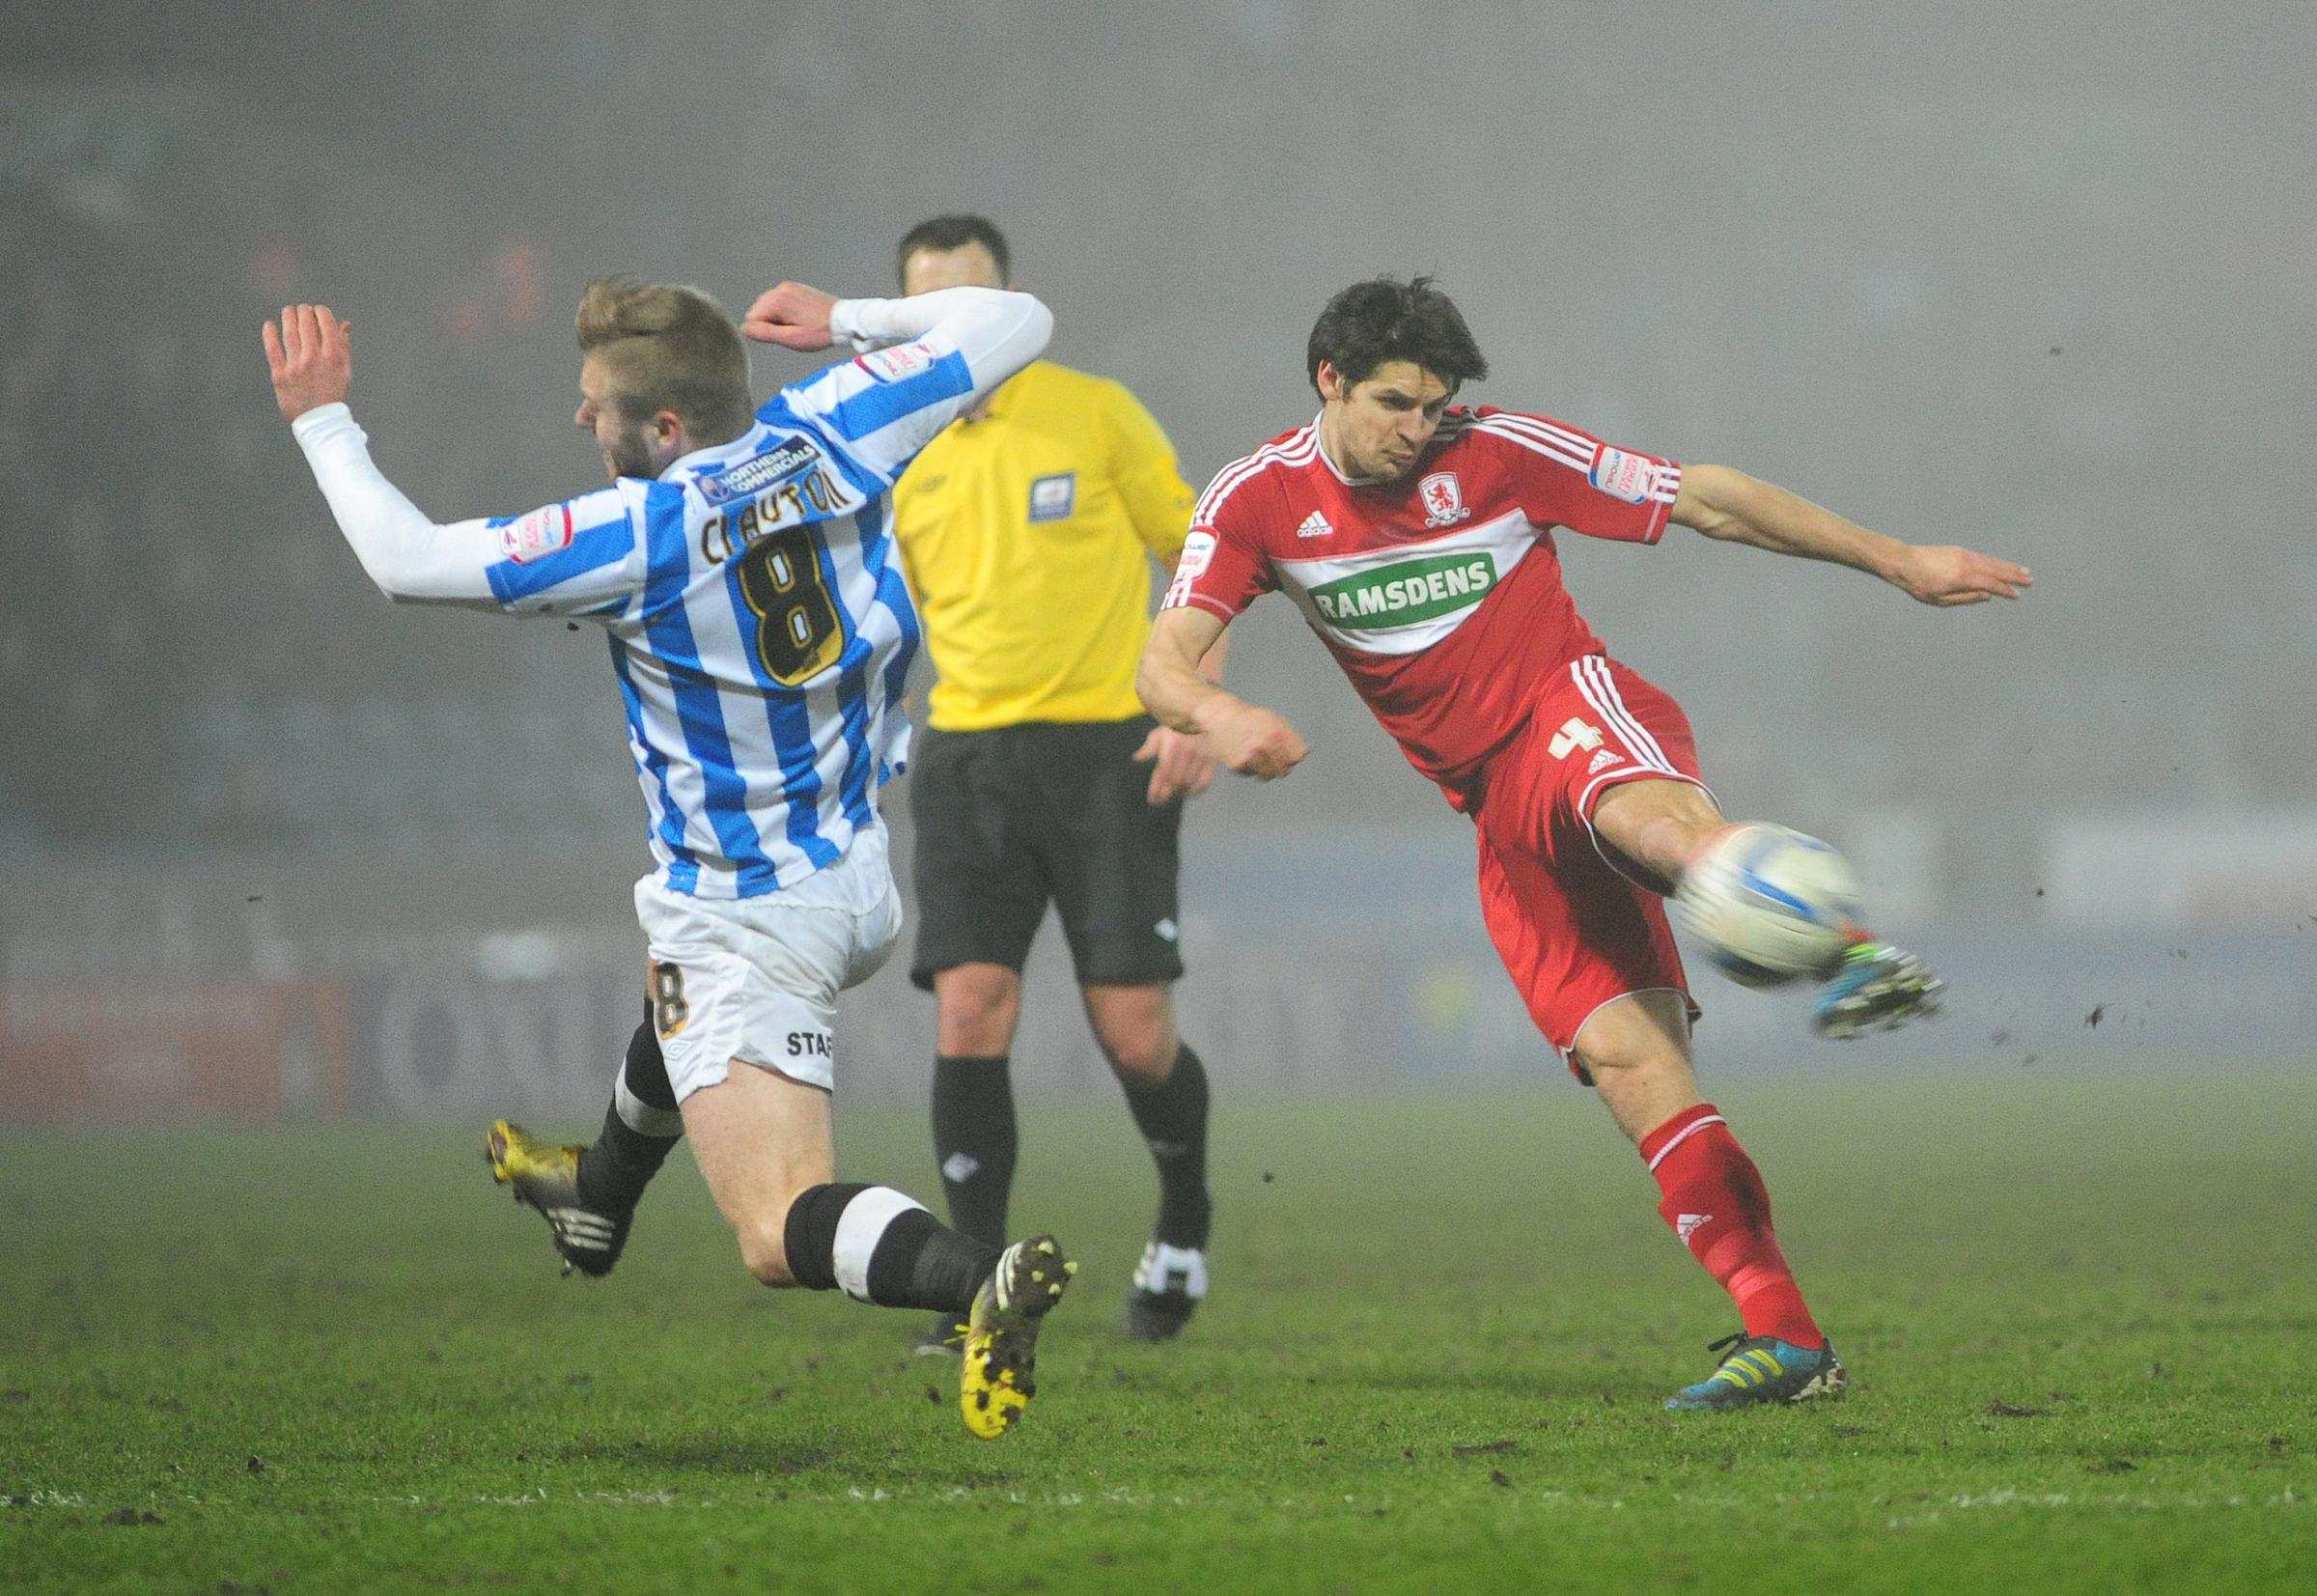 Huddersfield Town's Adam Clayton tries to block a shot from Middlesbrough's George Friend